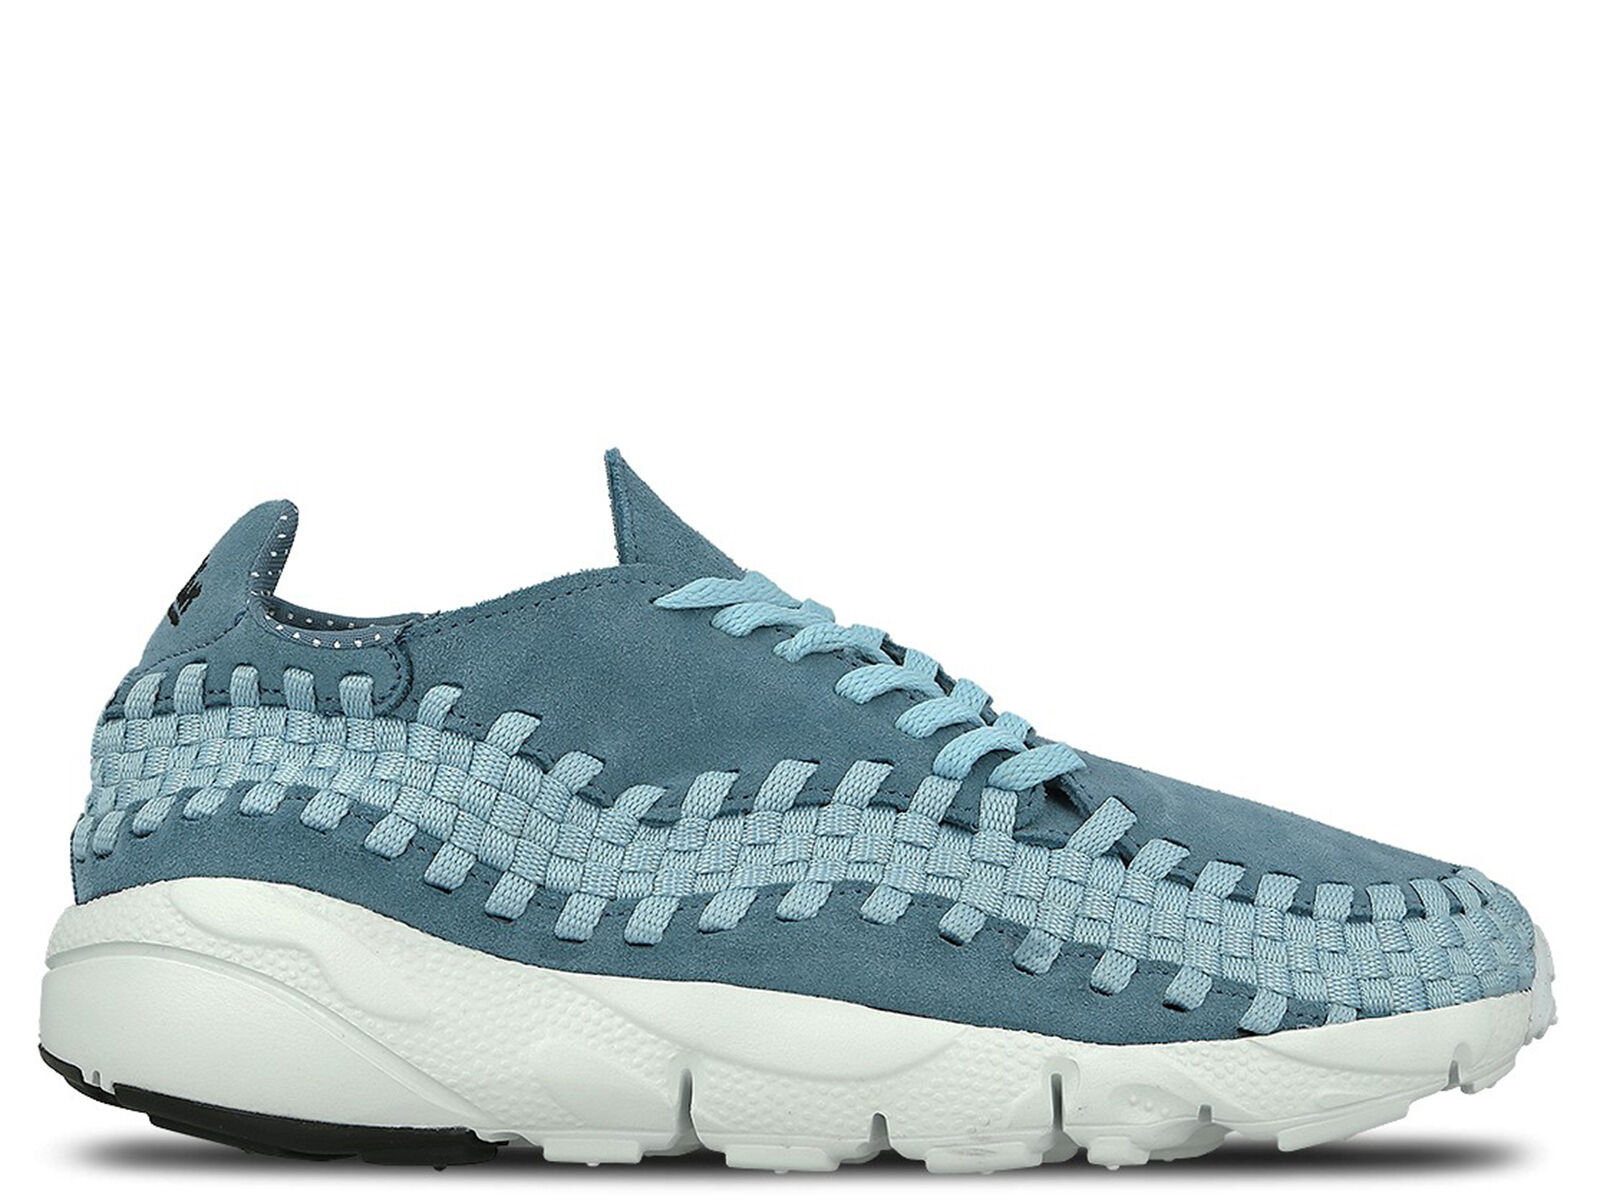 Men Brand New Nike Air Footscape Woven NM Athletic Fashion Sneakers [875797 002]